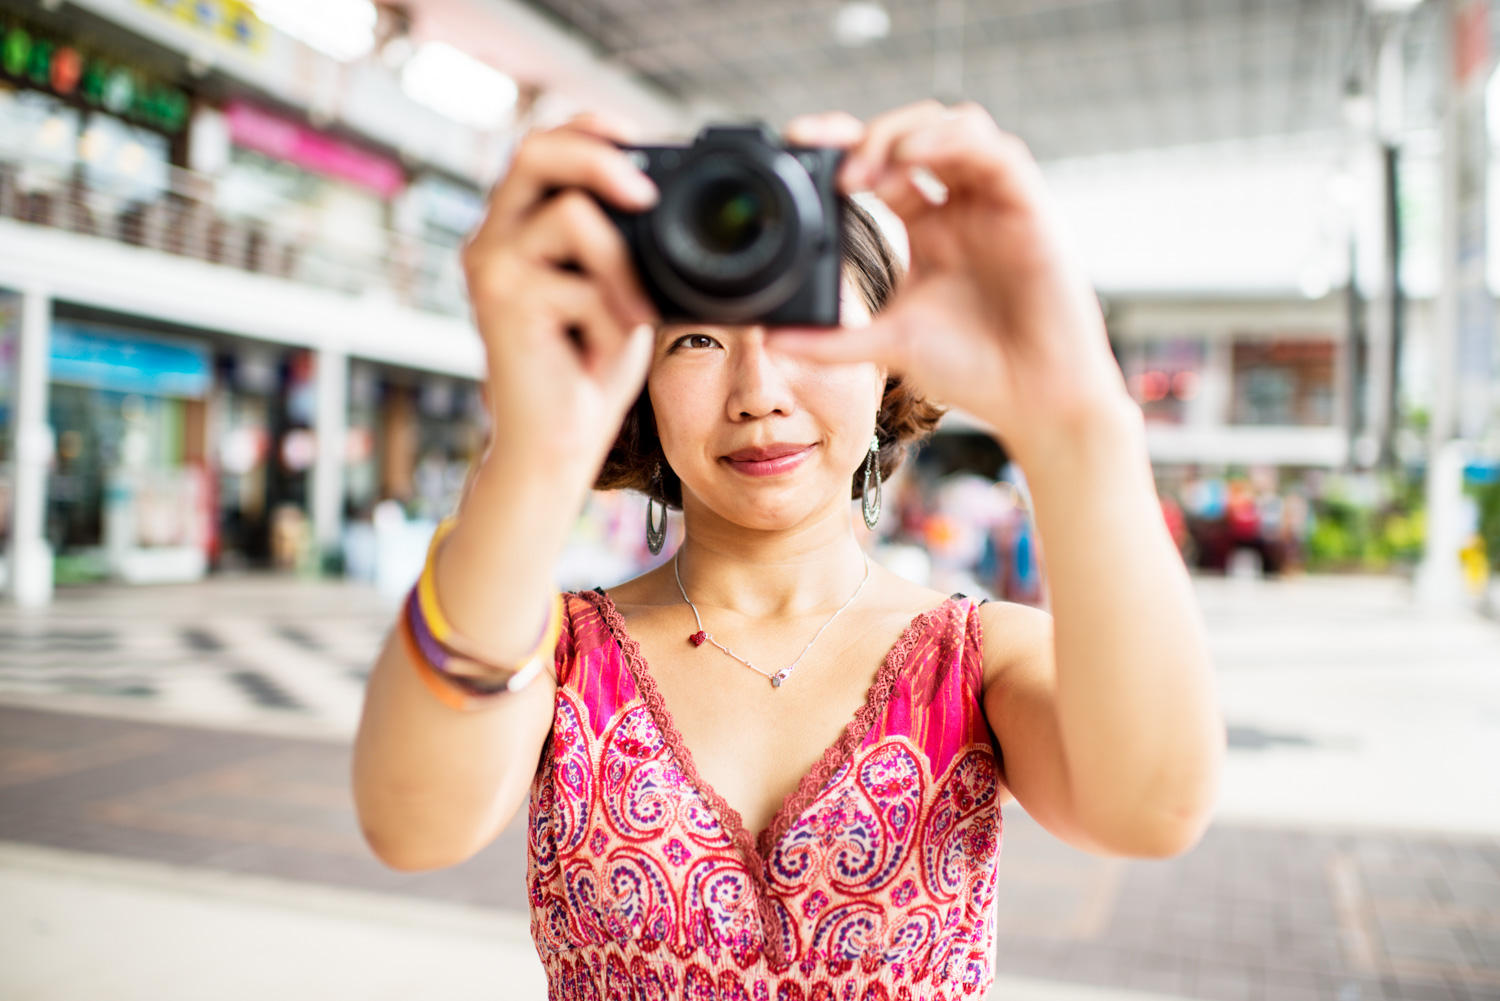 Woman at an out door shopping mall taking a photograph.